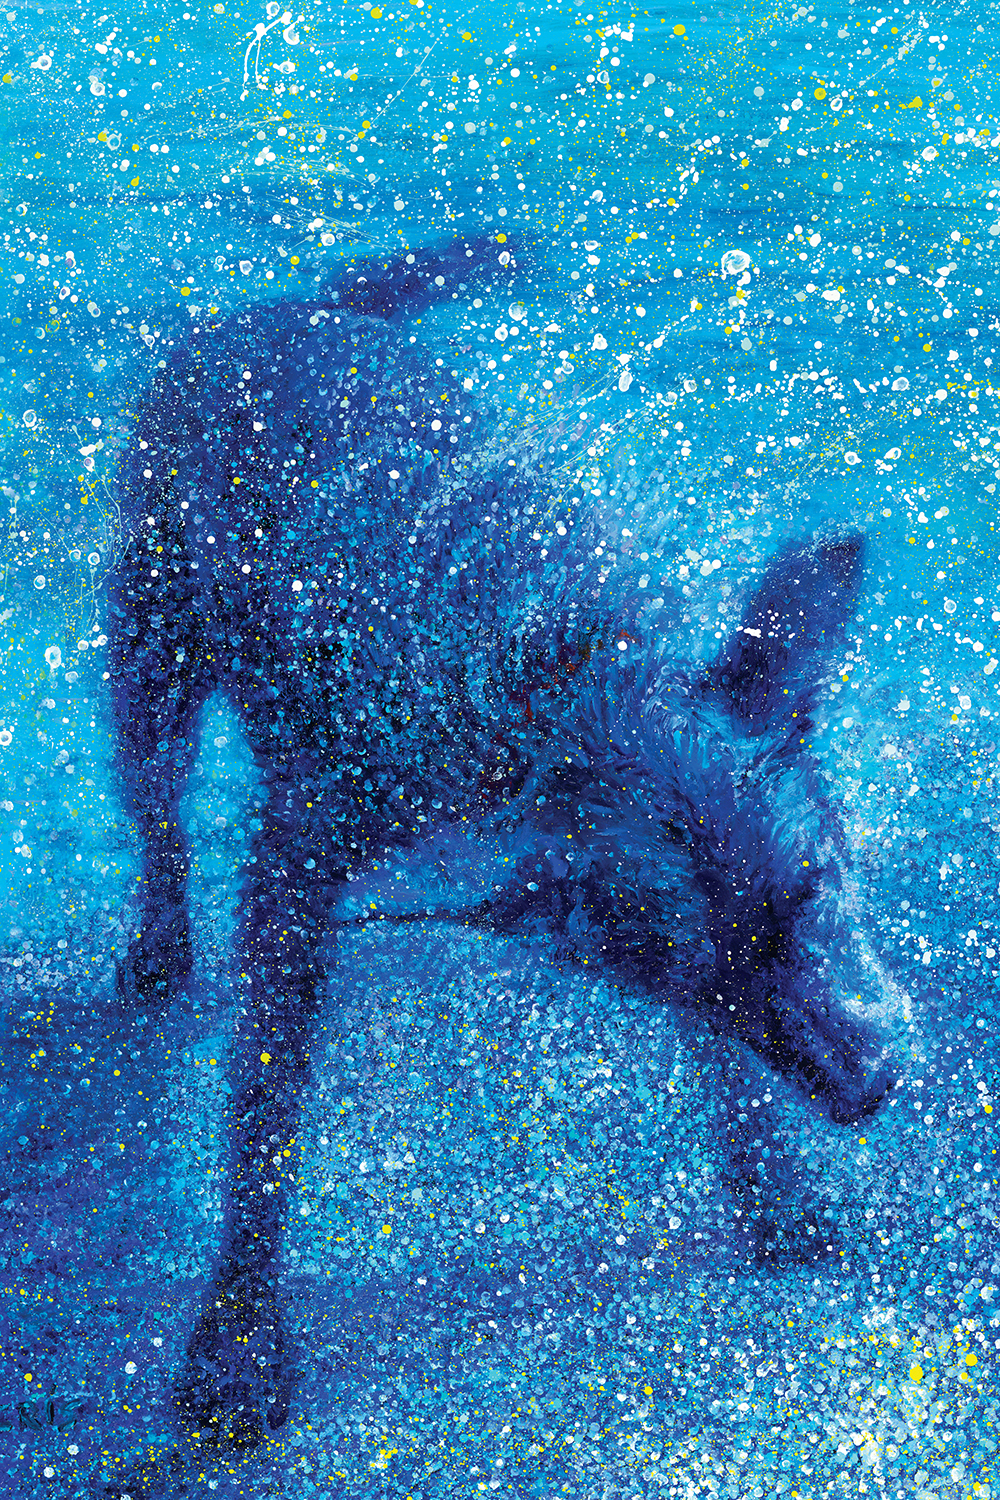 Image of dog shaking water off into tiny splattered dots on a blue background